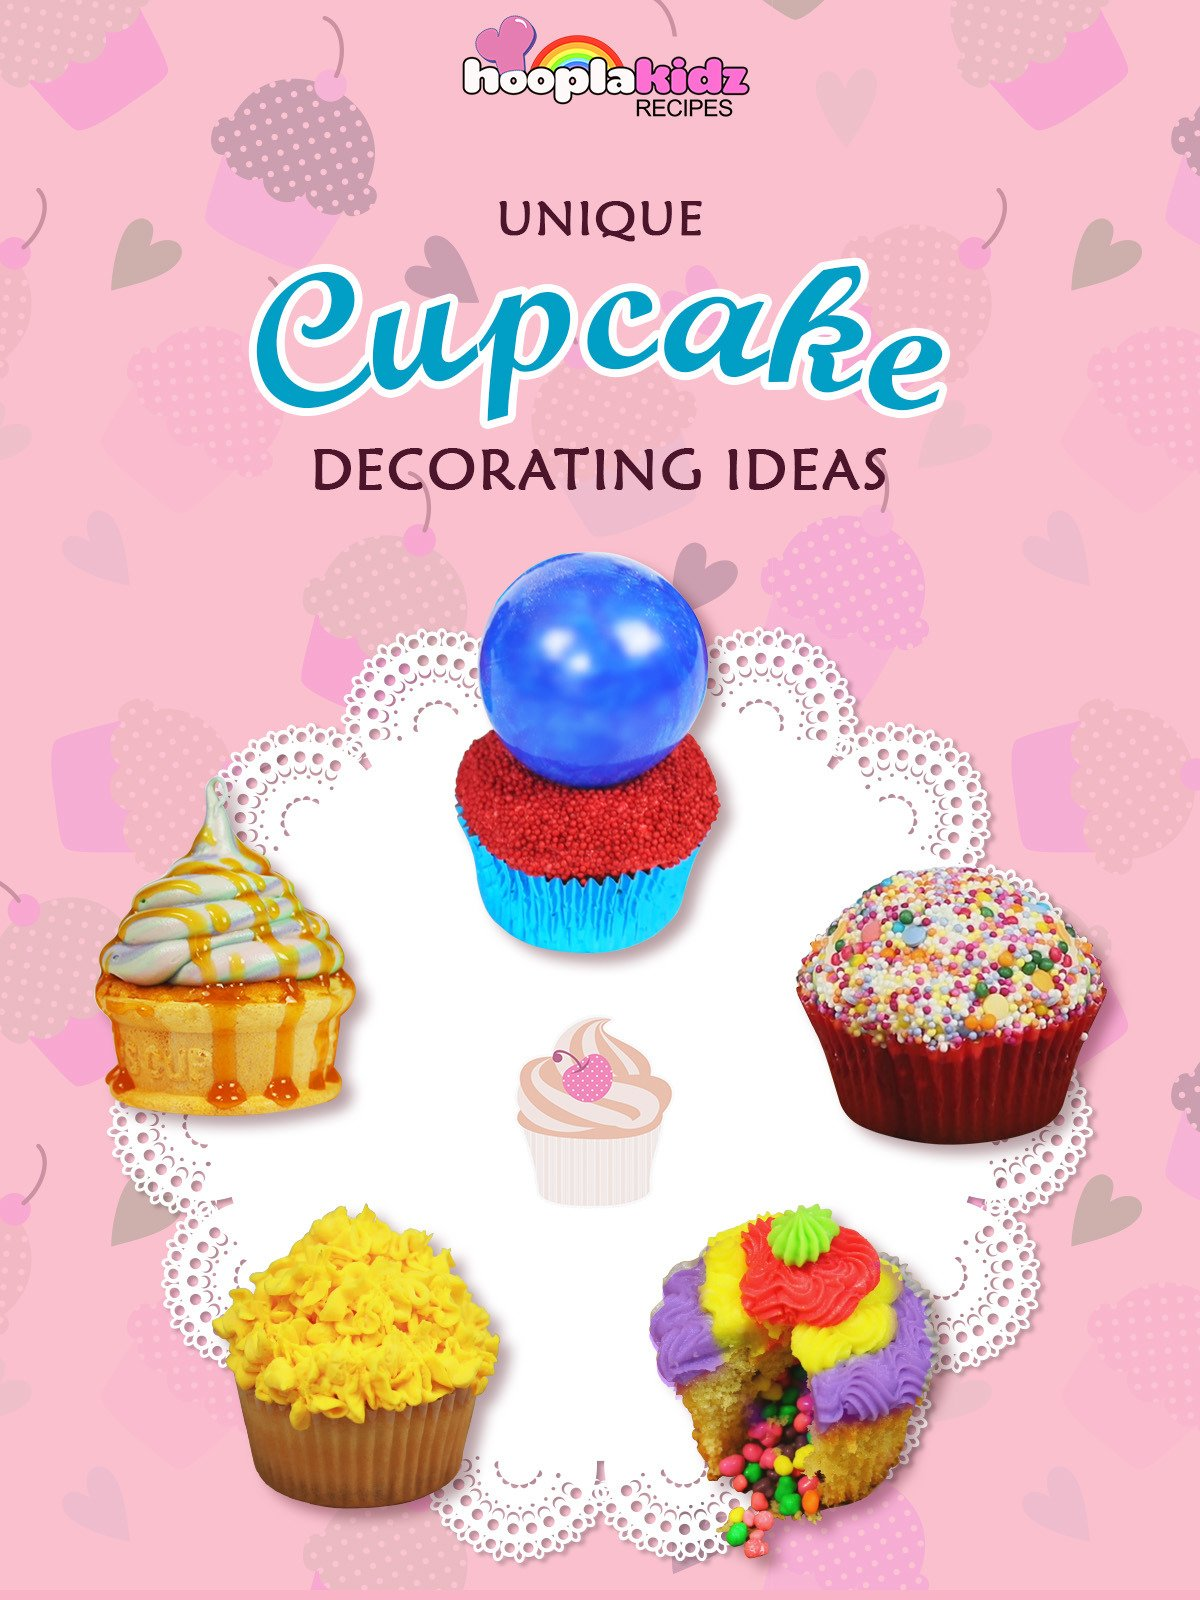 Unique Cupcake Decorating Ideas